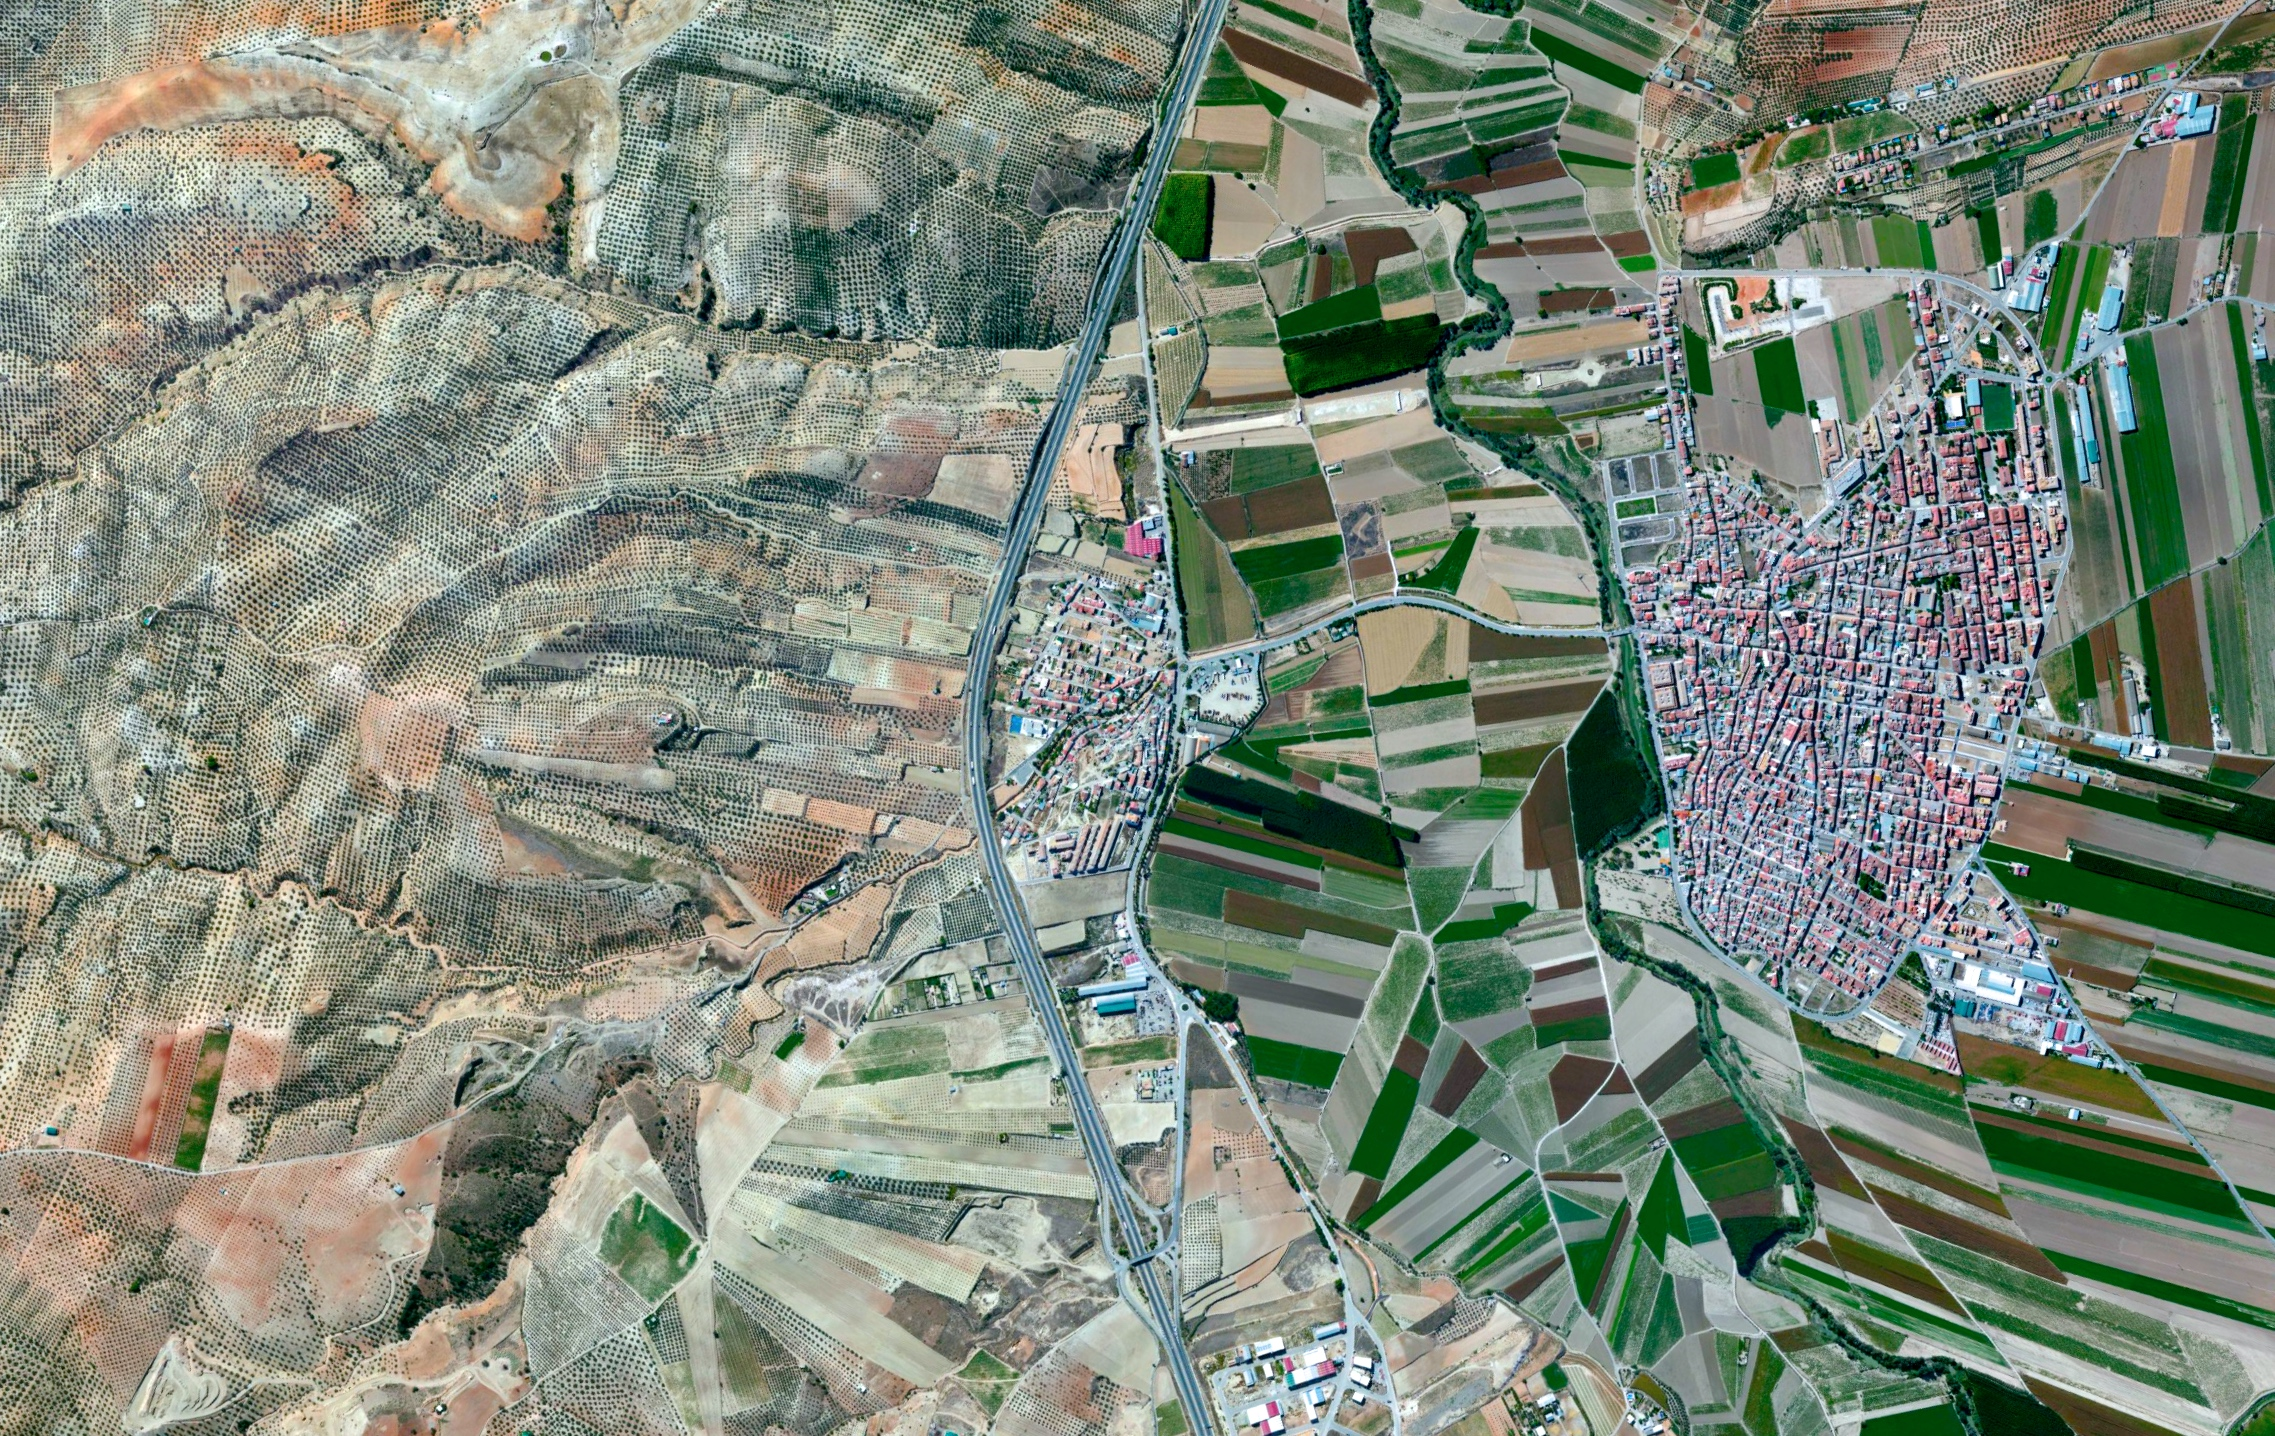 5/27/2015  Agricultural development  Huétor-Tájar, Granada, Spain  37°11′41″N 4°02′47″W     Agricultural development surroundsHuétor Tájar, a small town located in the province of Granada, Spain. The primary crops grown in the municipality are asparagus and olives.